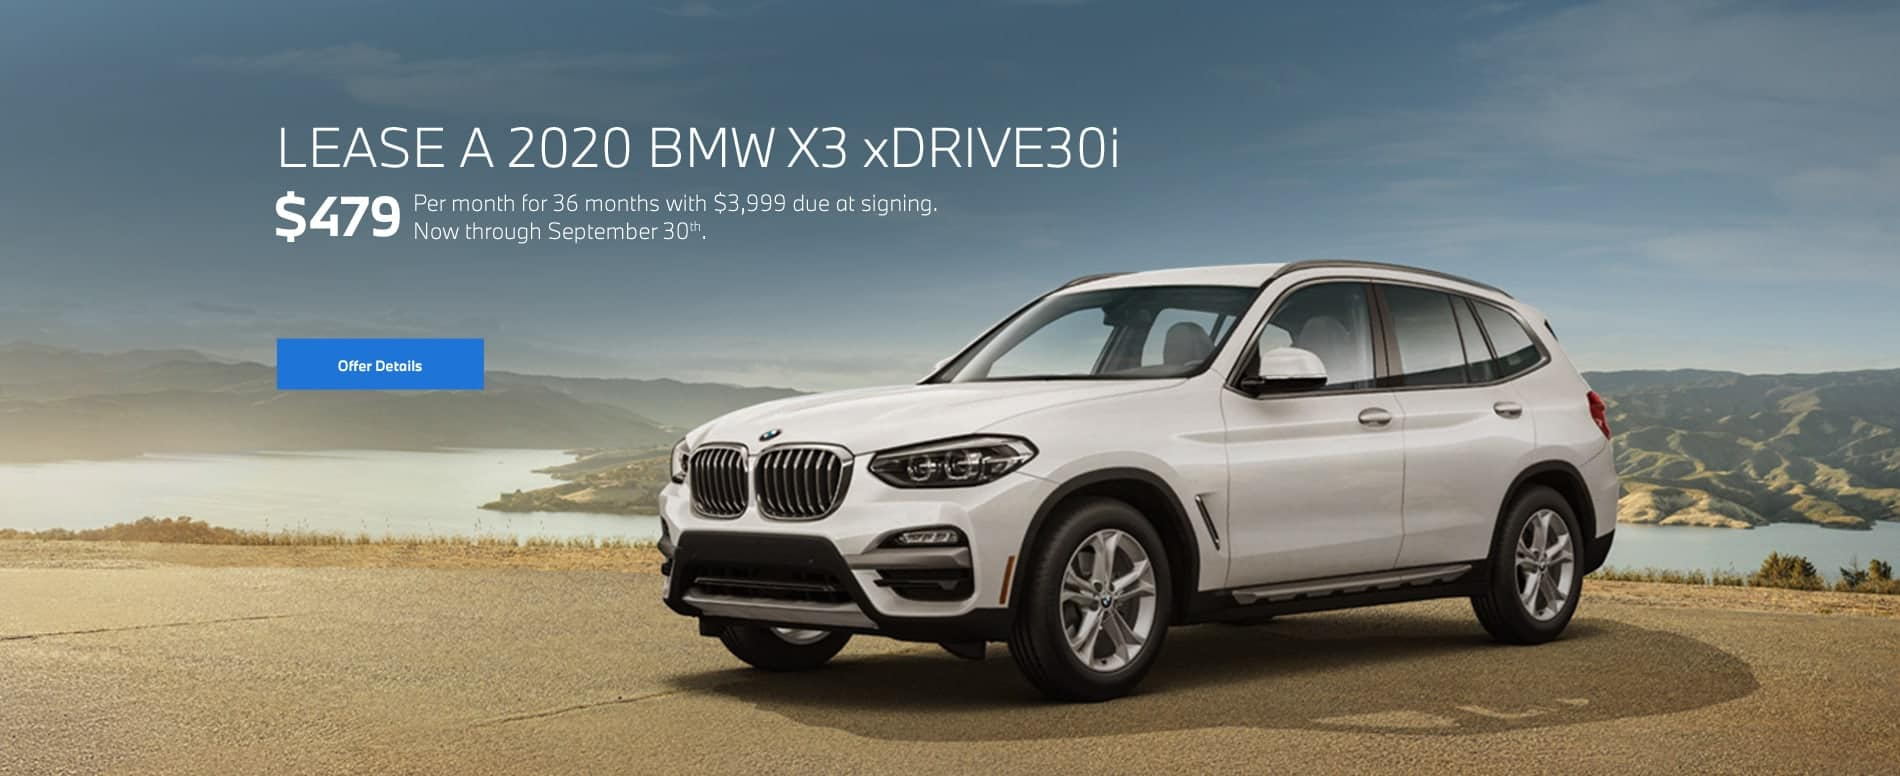 2020 BMW X3 xDrive30i for $479/mo